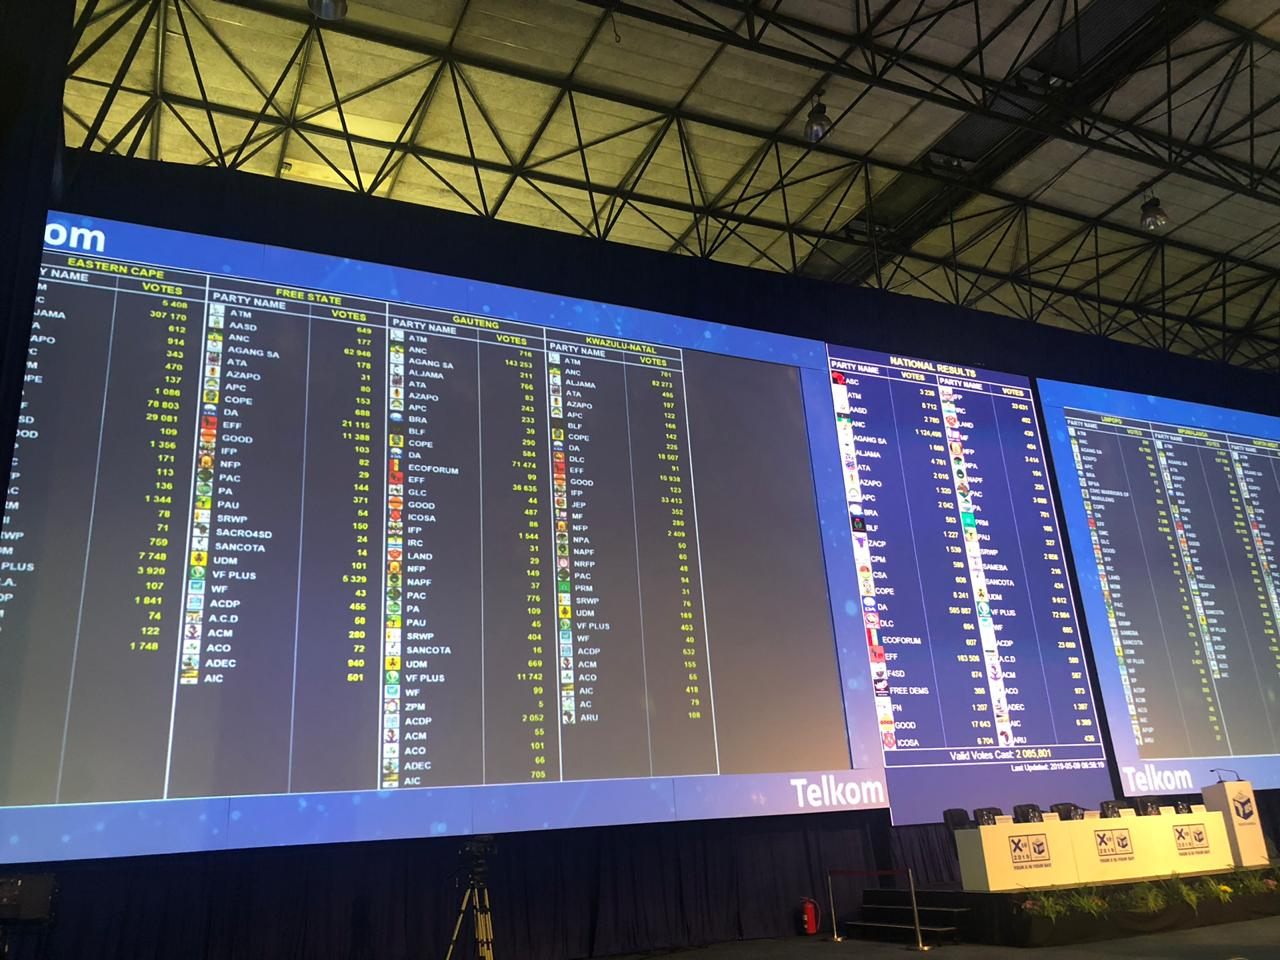 The results board at the IEC results operation centre in Pretoria.